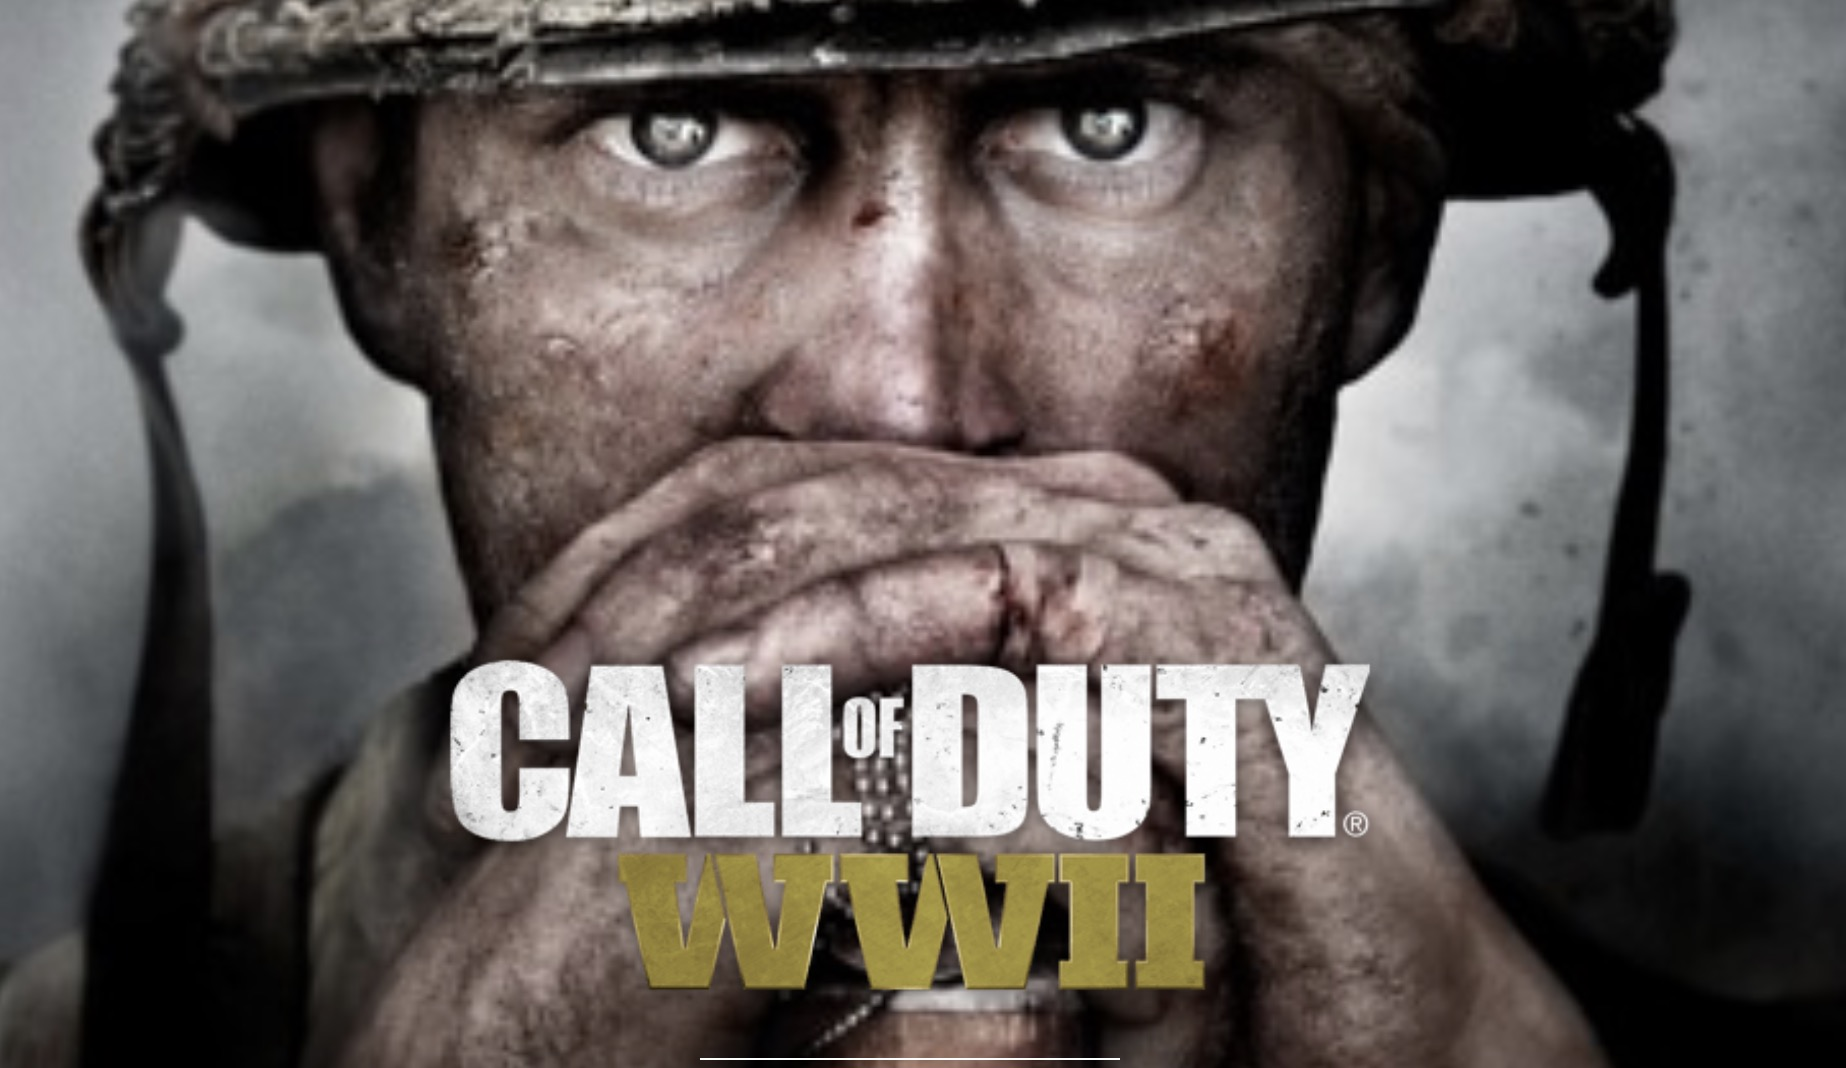 Everything You Need To Know About The Call Of Duty WWII